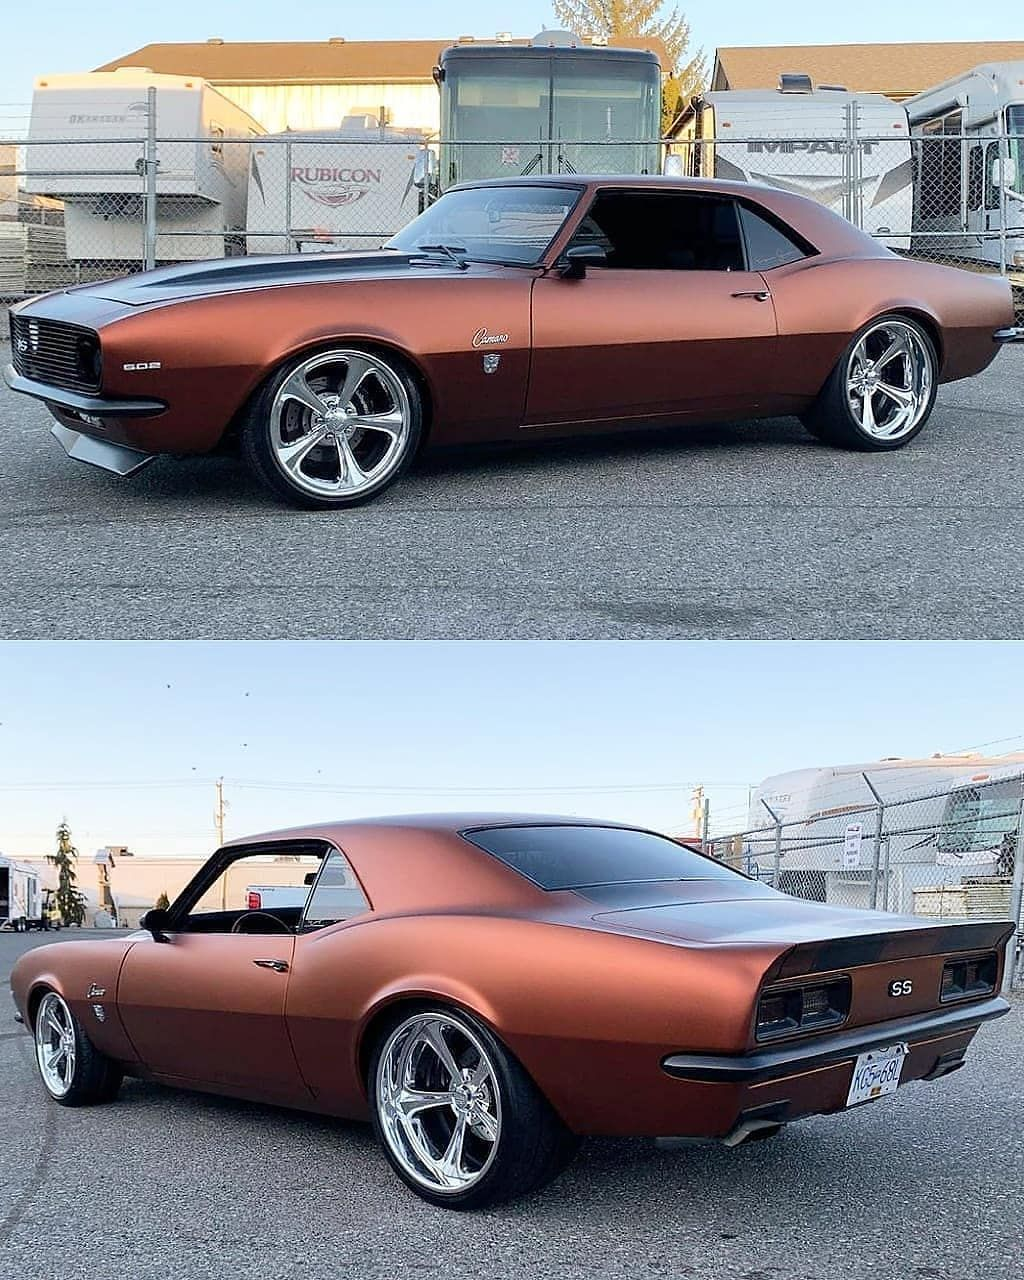 Muscle Car Daily S Instagram Profile Post 68 Camaro Owned By Steve Nicola051 Vehicle Classics Vehicles Inst In 2020 Chevy Muscle Cars Old Muscle Cars Camaro